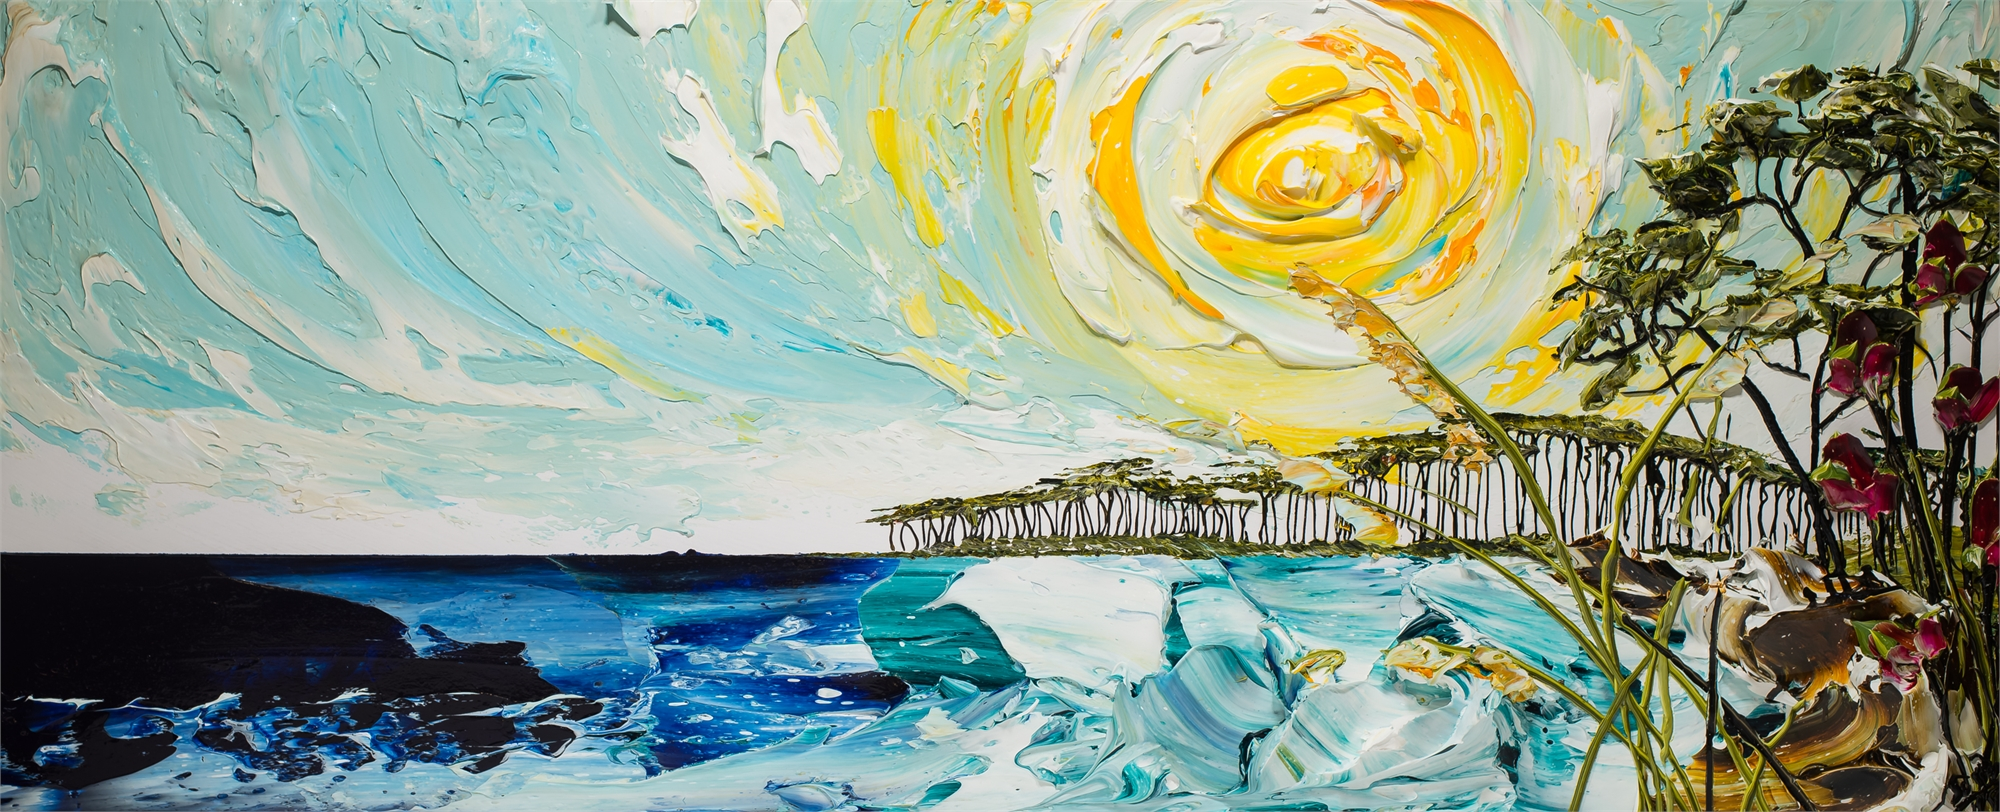 (SOLD) SEASCAPE SS72X30-2018-330 by Justin Gaffrey